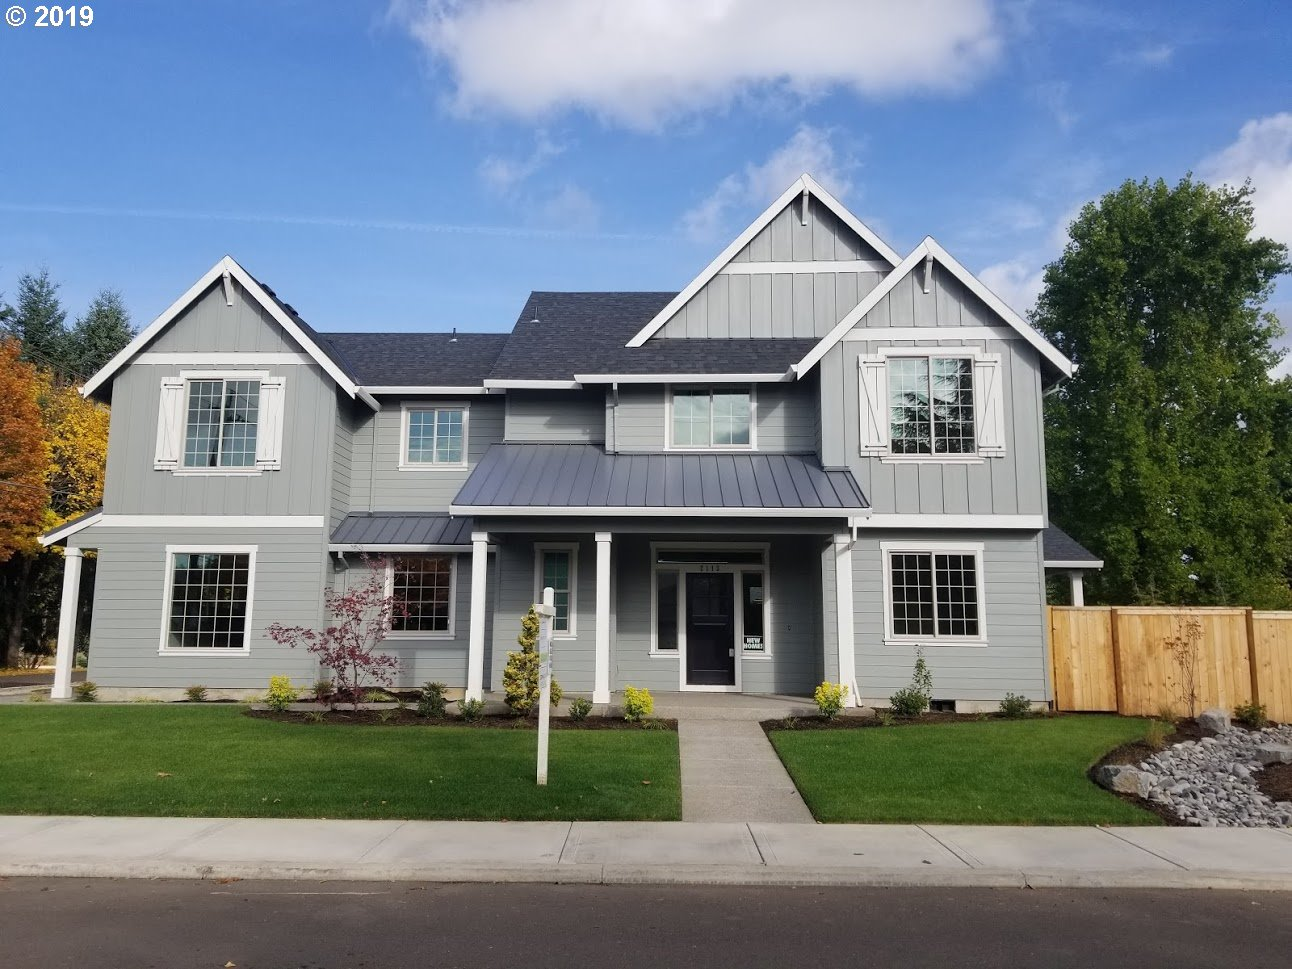 OPEN HOUSE this Saturday 2/22 1:30-4pm. New construction in sought after Willamette neighborhood. 10,000sf flat lot!3 car oversize garage. Massive area for future RV parking on side of garage. 5 beds (5th bed could be bonus room) + main level office. AC, tankless H20. Fenced, front + back landscaped w/sprinklers.2 Large covered back patios. Kitchen has large island, pantry, quartz. Master suite has free standing soak tub + title shower.